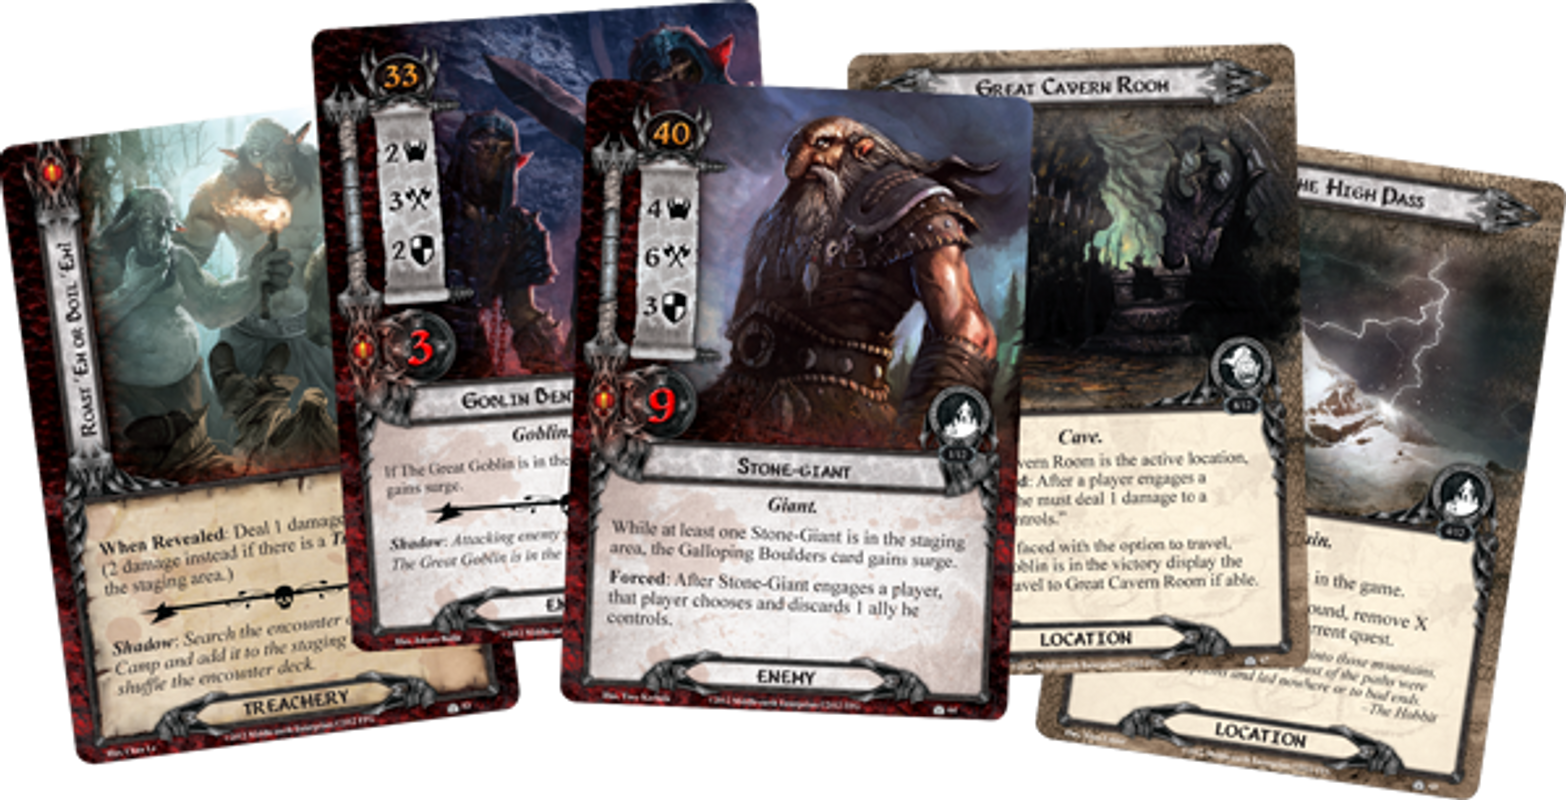 The Lord of the Rings: The Card Game - The Hobbit: Over Hill and Under Hill cards